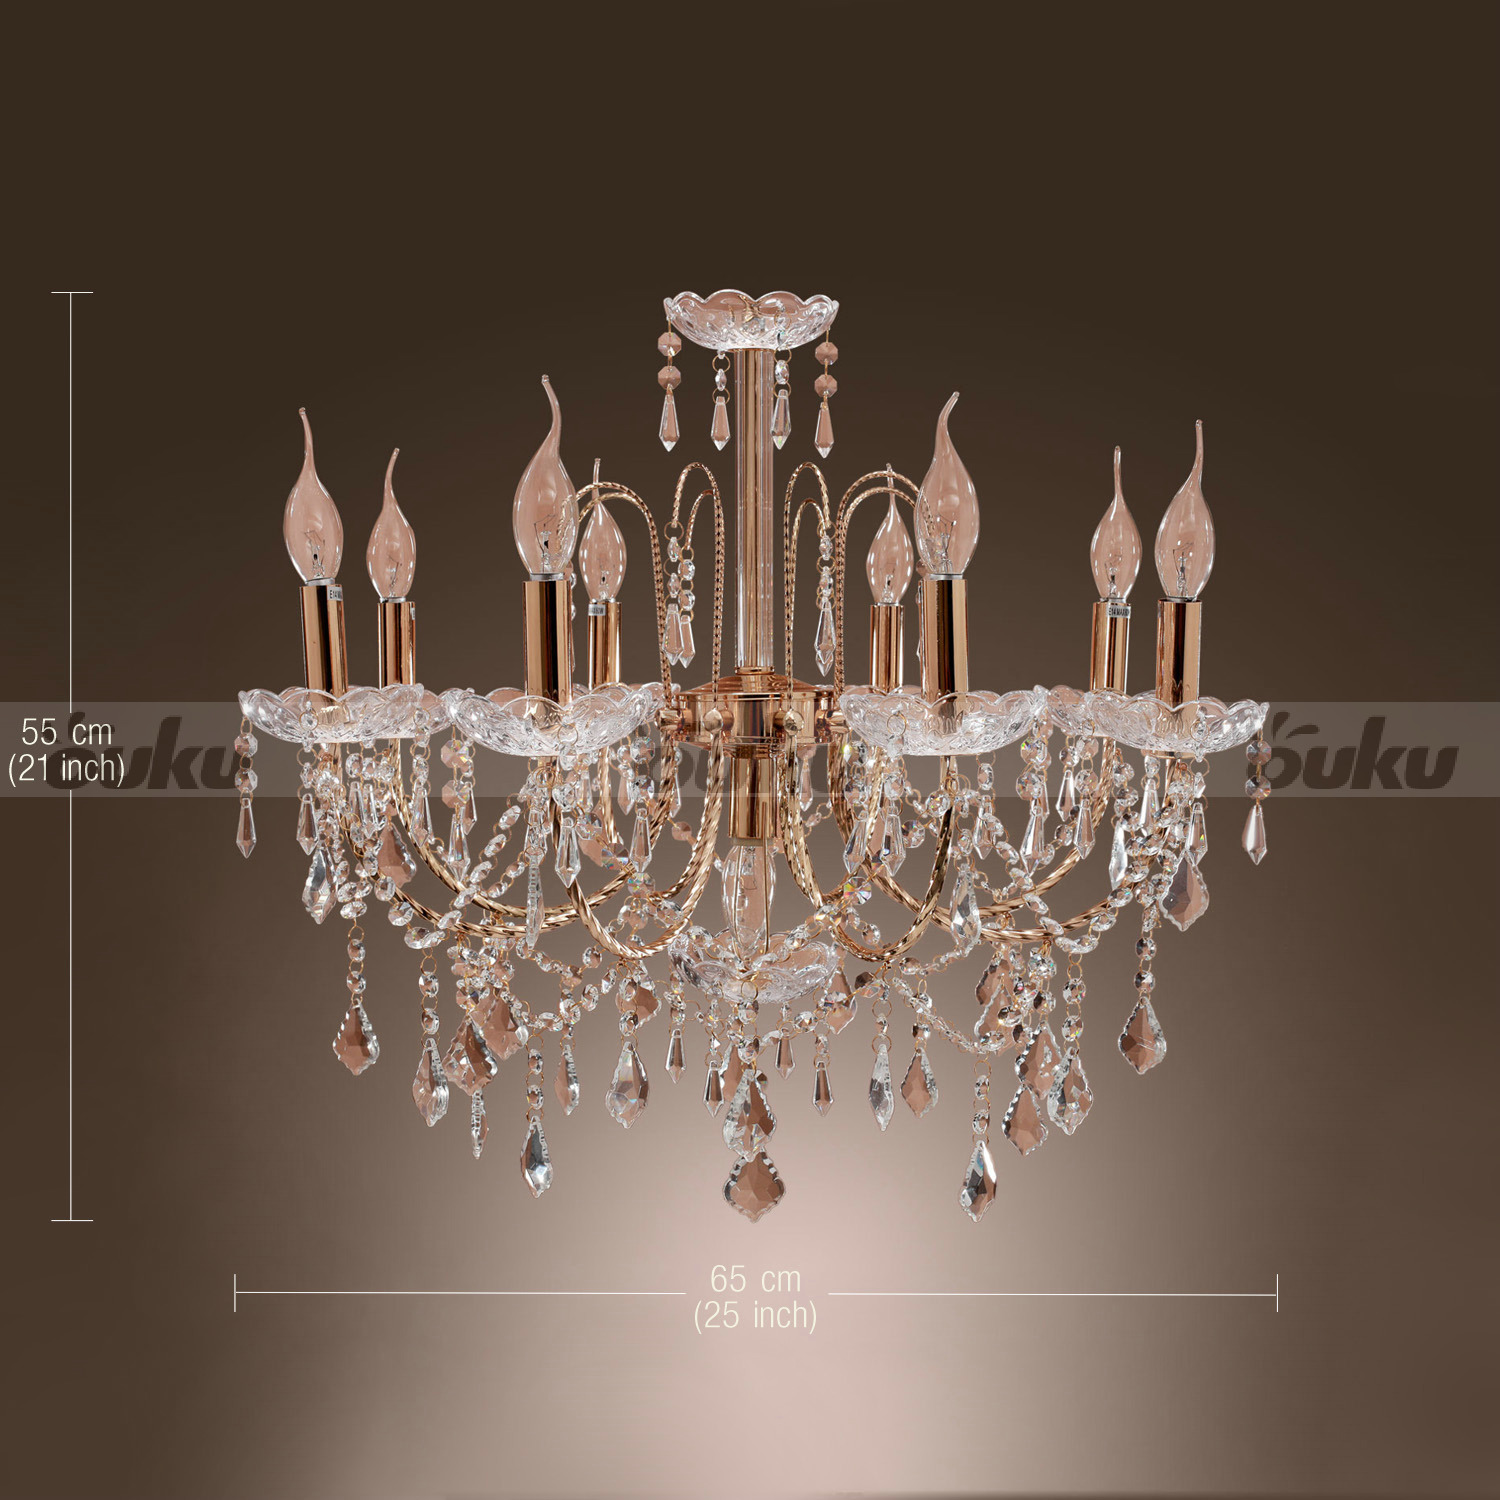 Lodge Rustic Crystal Candle Shape Chandelier Ceiling Light Pendant Lamp Hot